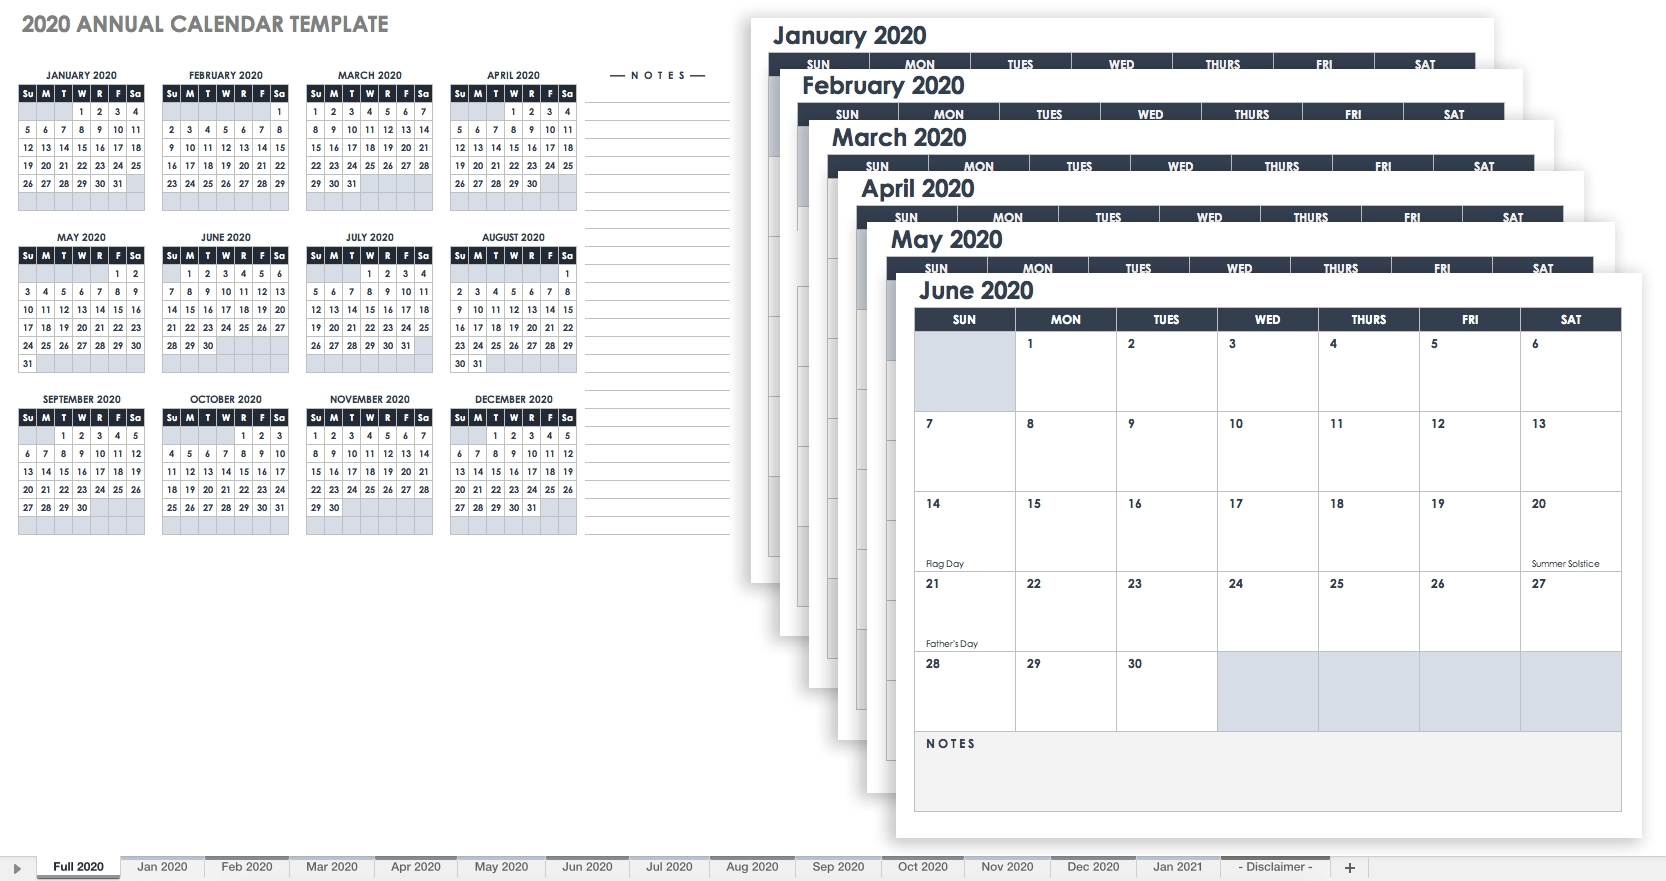 Free, Printable Excel Calendar Templates For 2019 & On | Smartsheet in Free Fillable Printable 2019 2020 Calendar